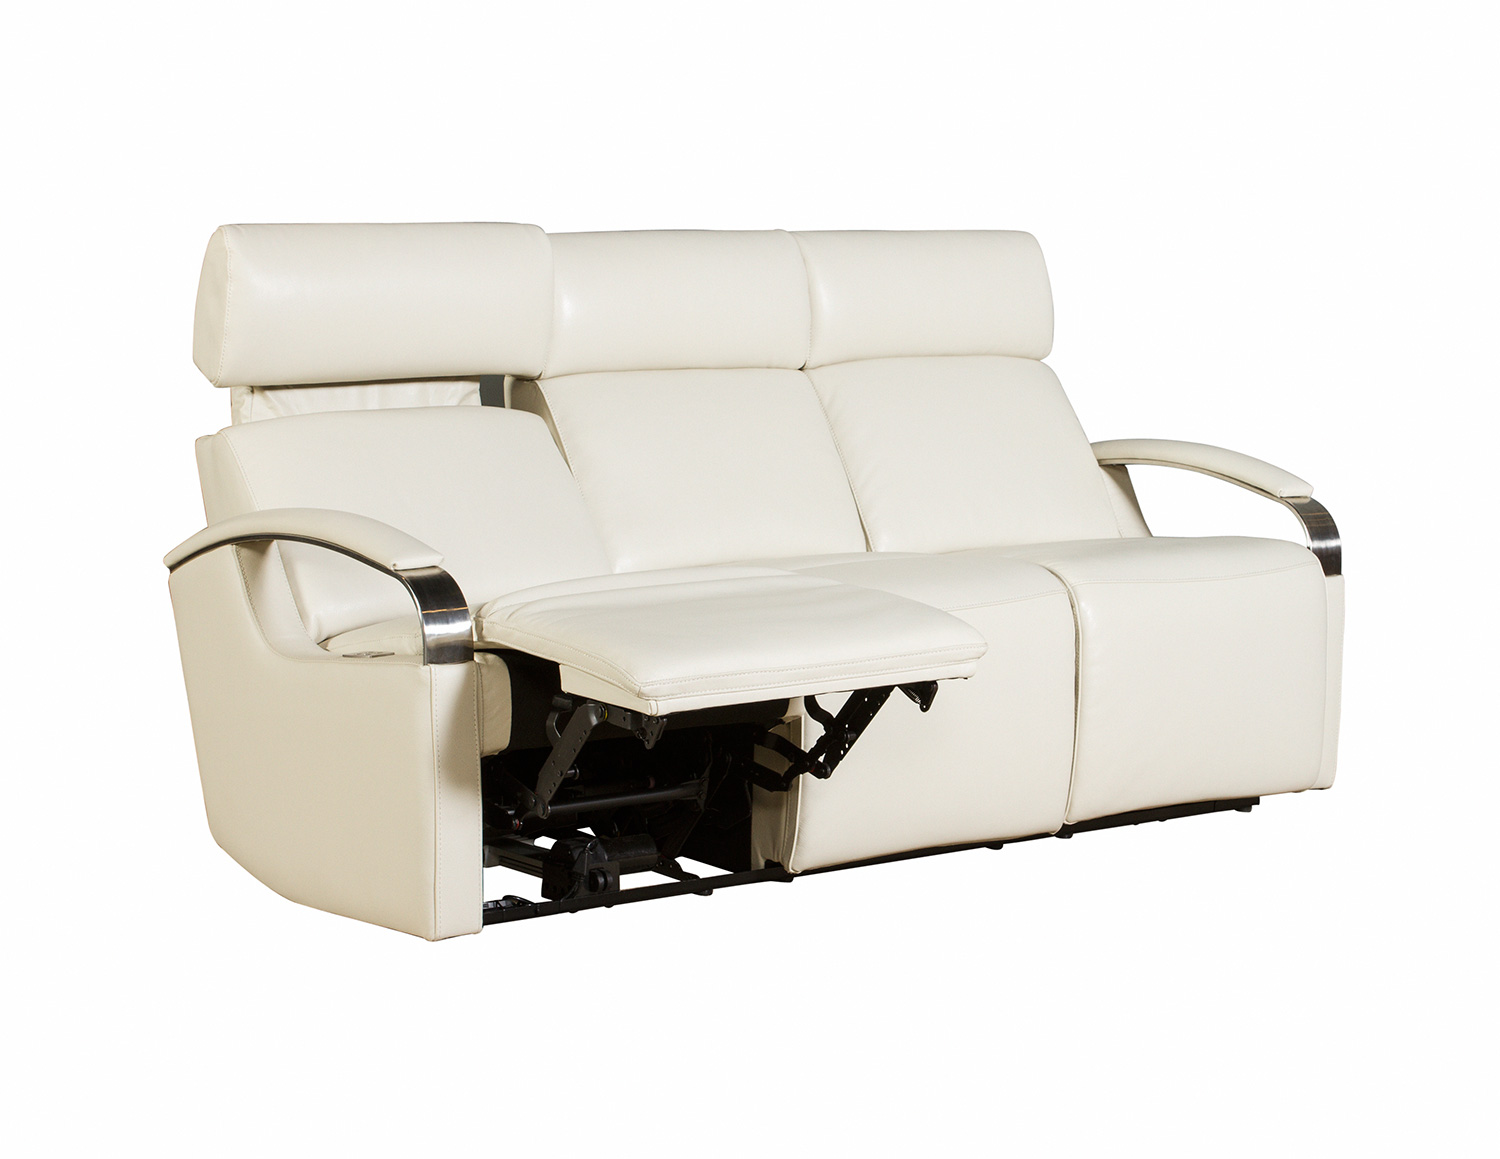 Barcalounger Cosmo Power Reclining Sofa with Power Head Rests - Cashmere White/Leather Match